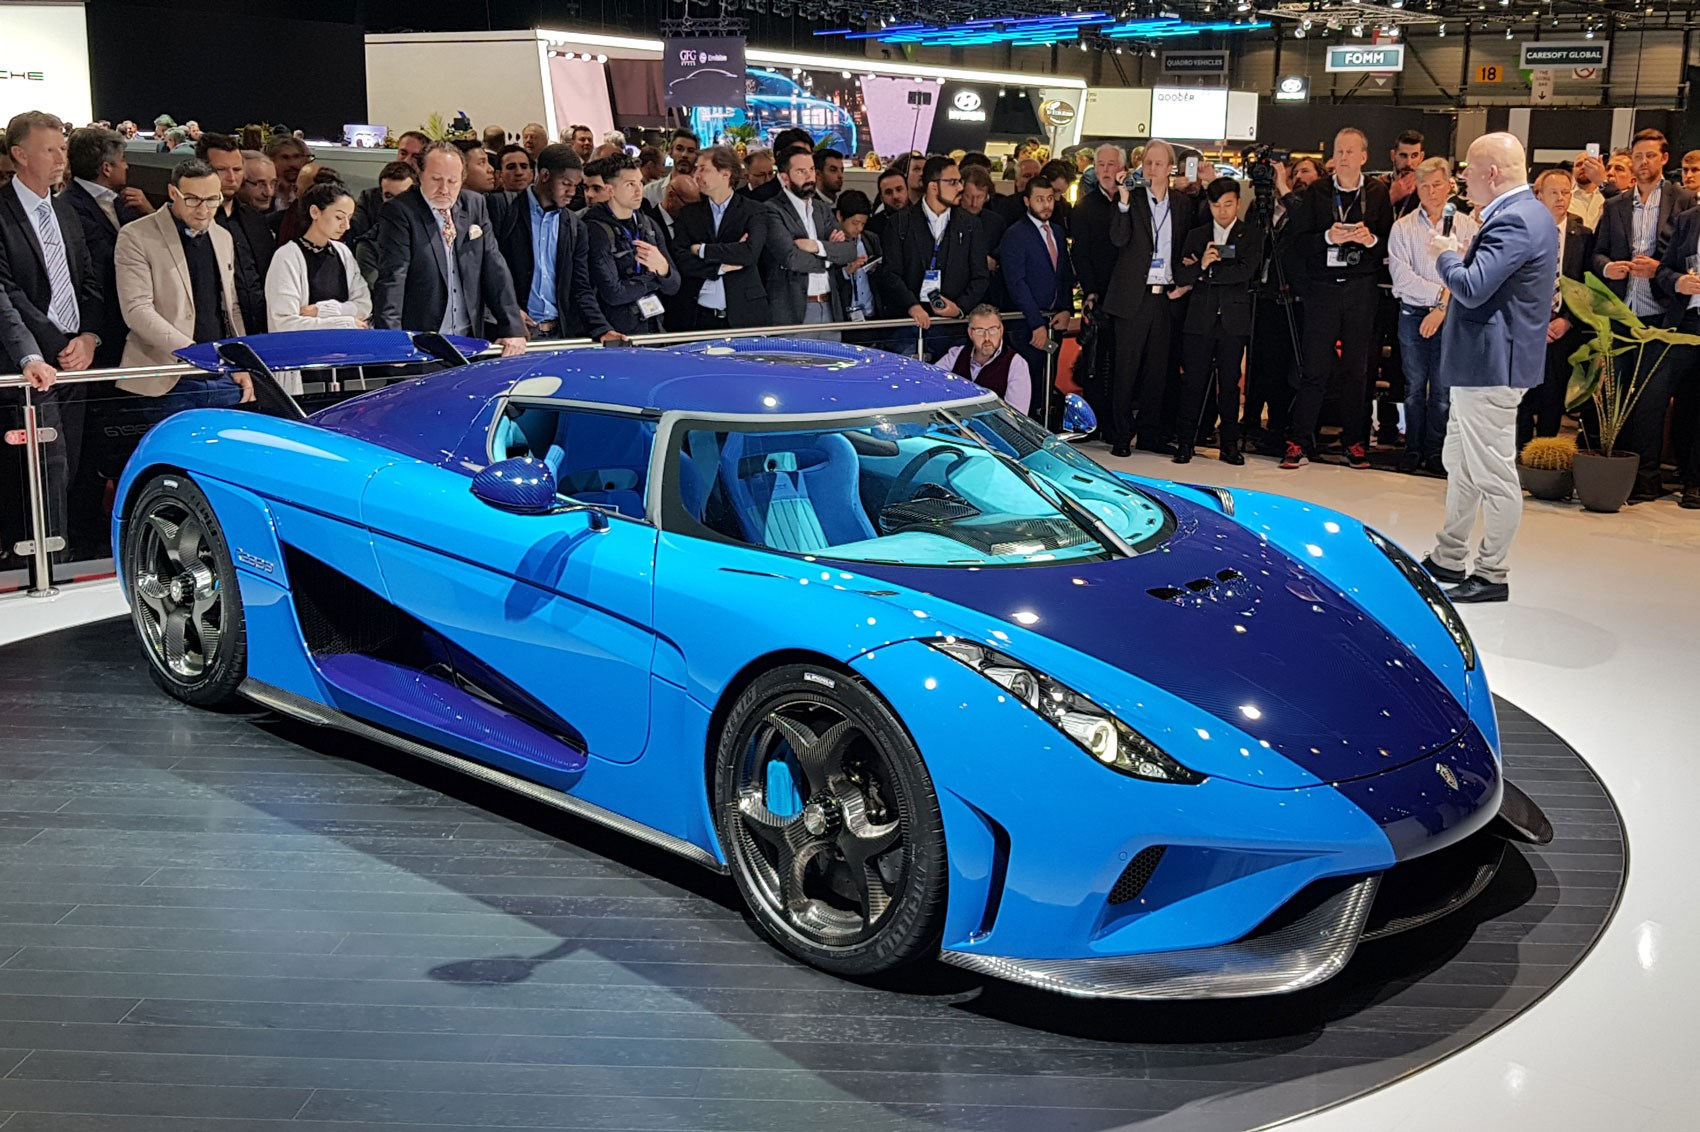 koenigsegg confirms agera rs replacement is coming in 2019 car magazine. Black Bedroom Furniture Sets. Home Design Ideas